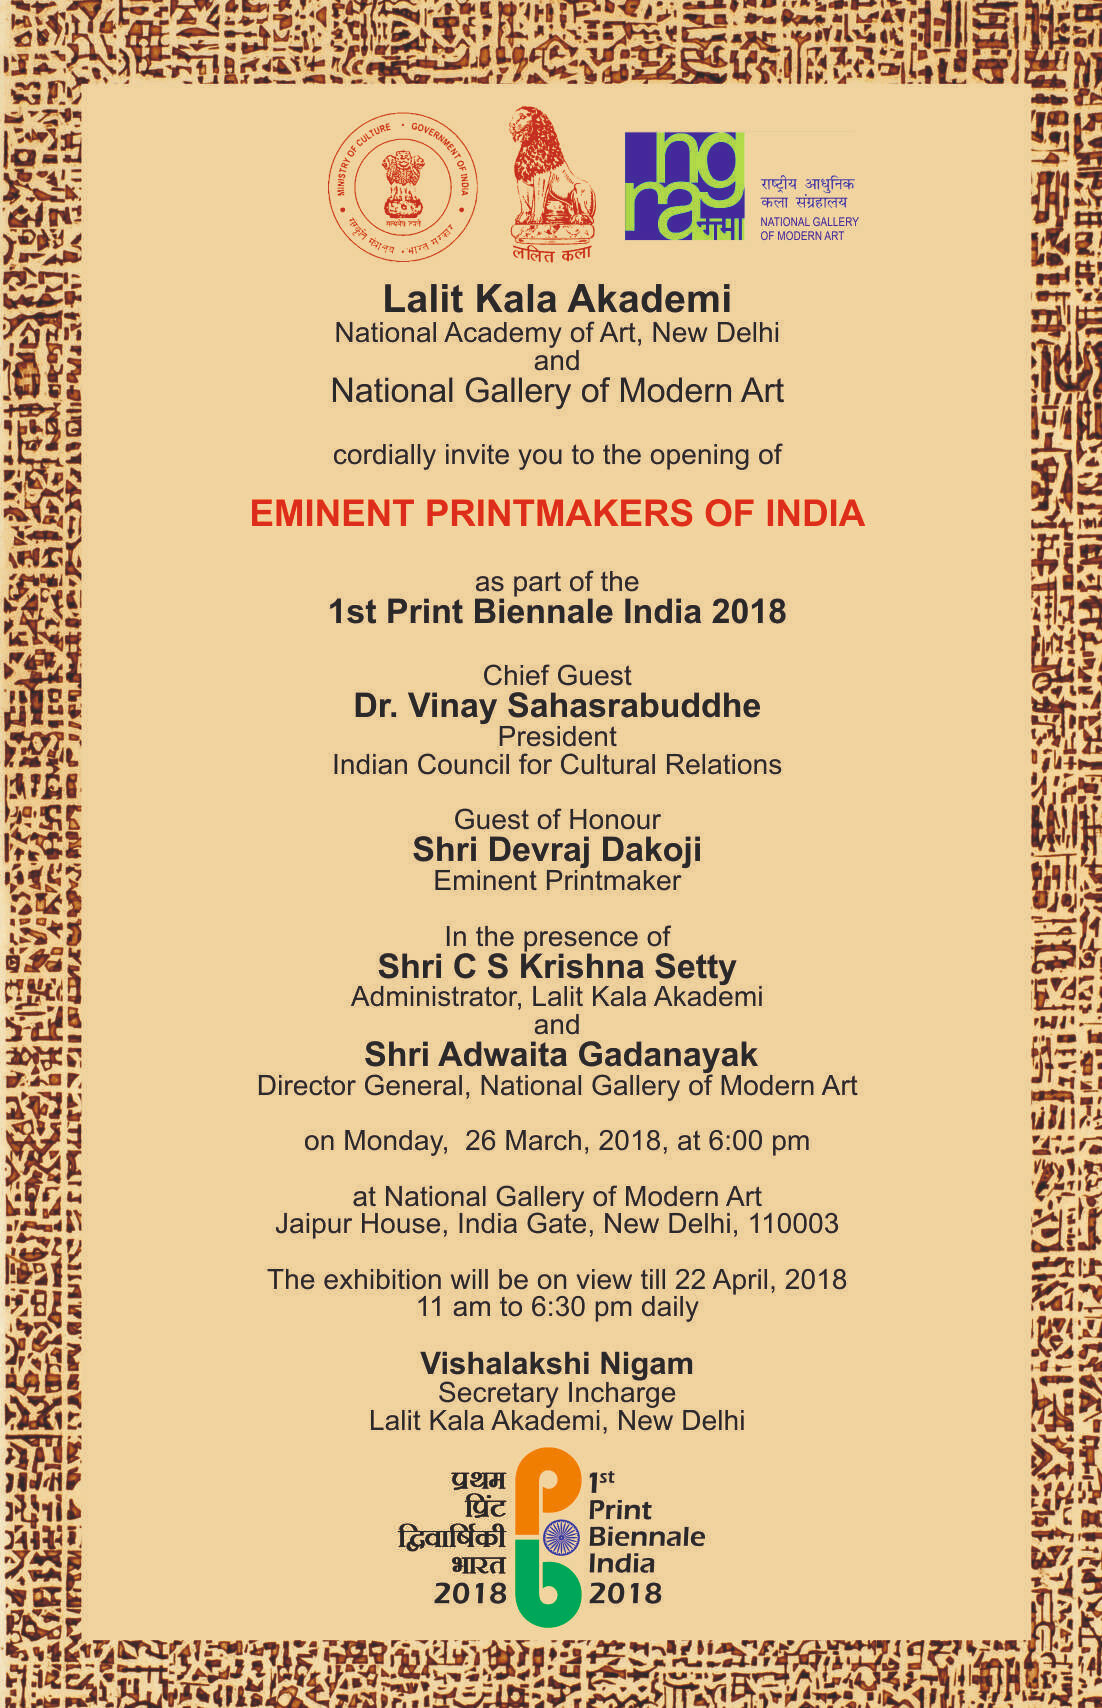 Lakshmi Dutt - 1st PRINT BIENNALE INDIA 2018 - 26 march till 22 april 2018